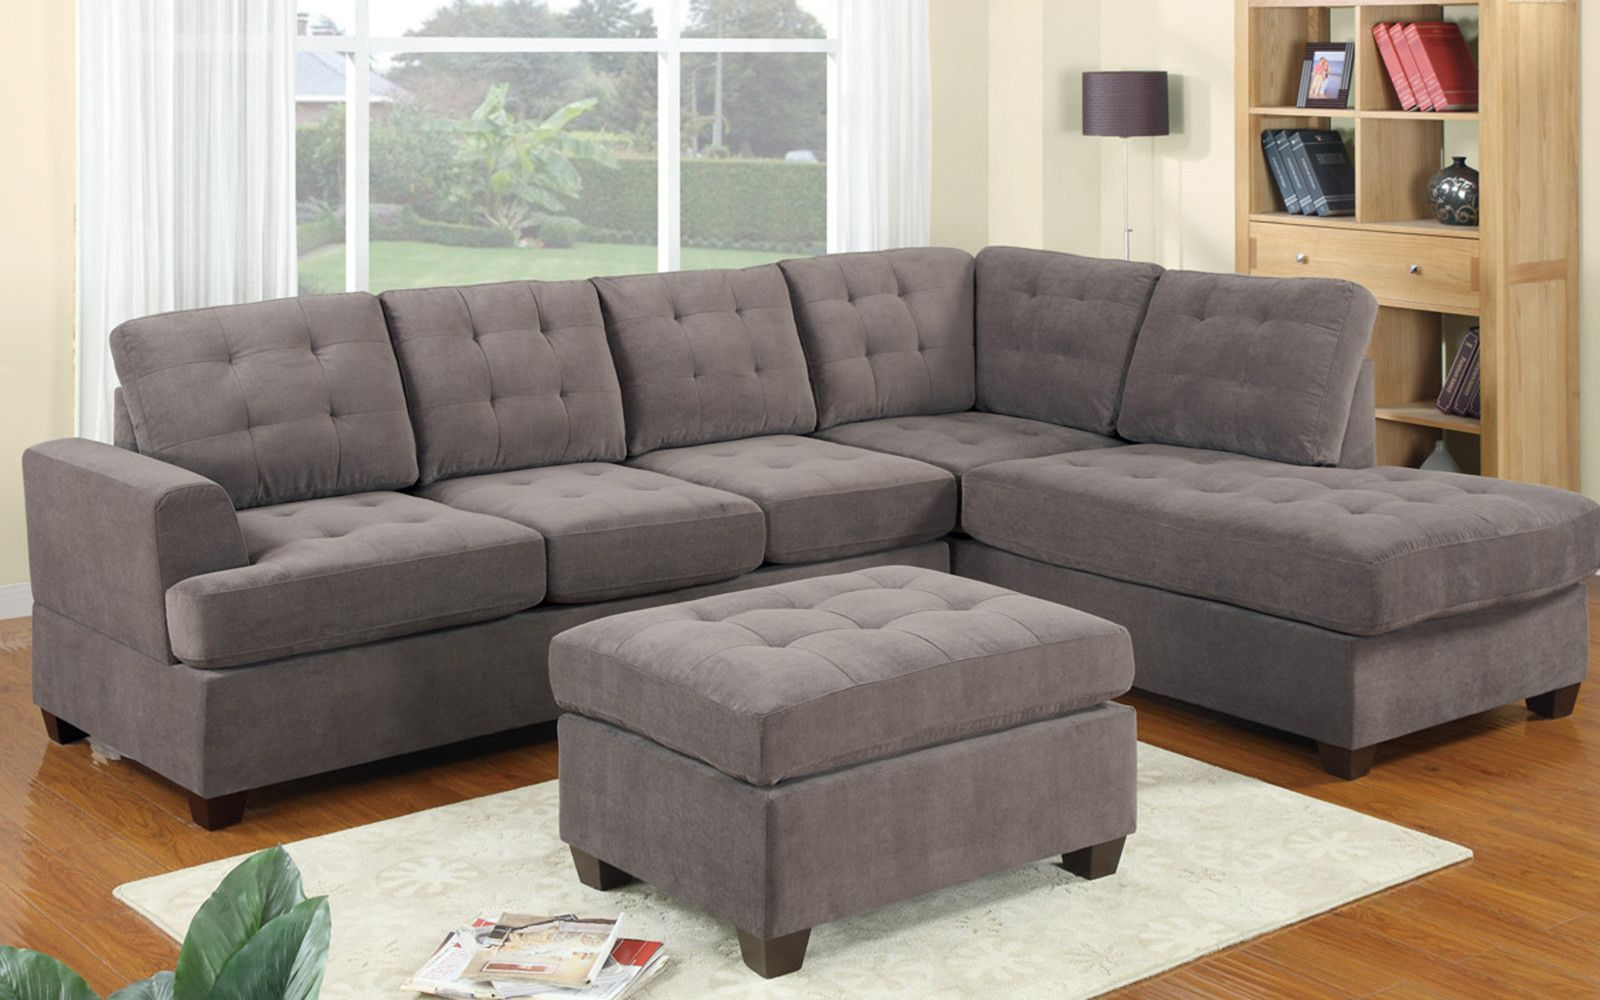 Angolo 2 Classic 2 Piece Sectional And Ottoman Set With Images